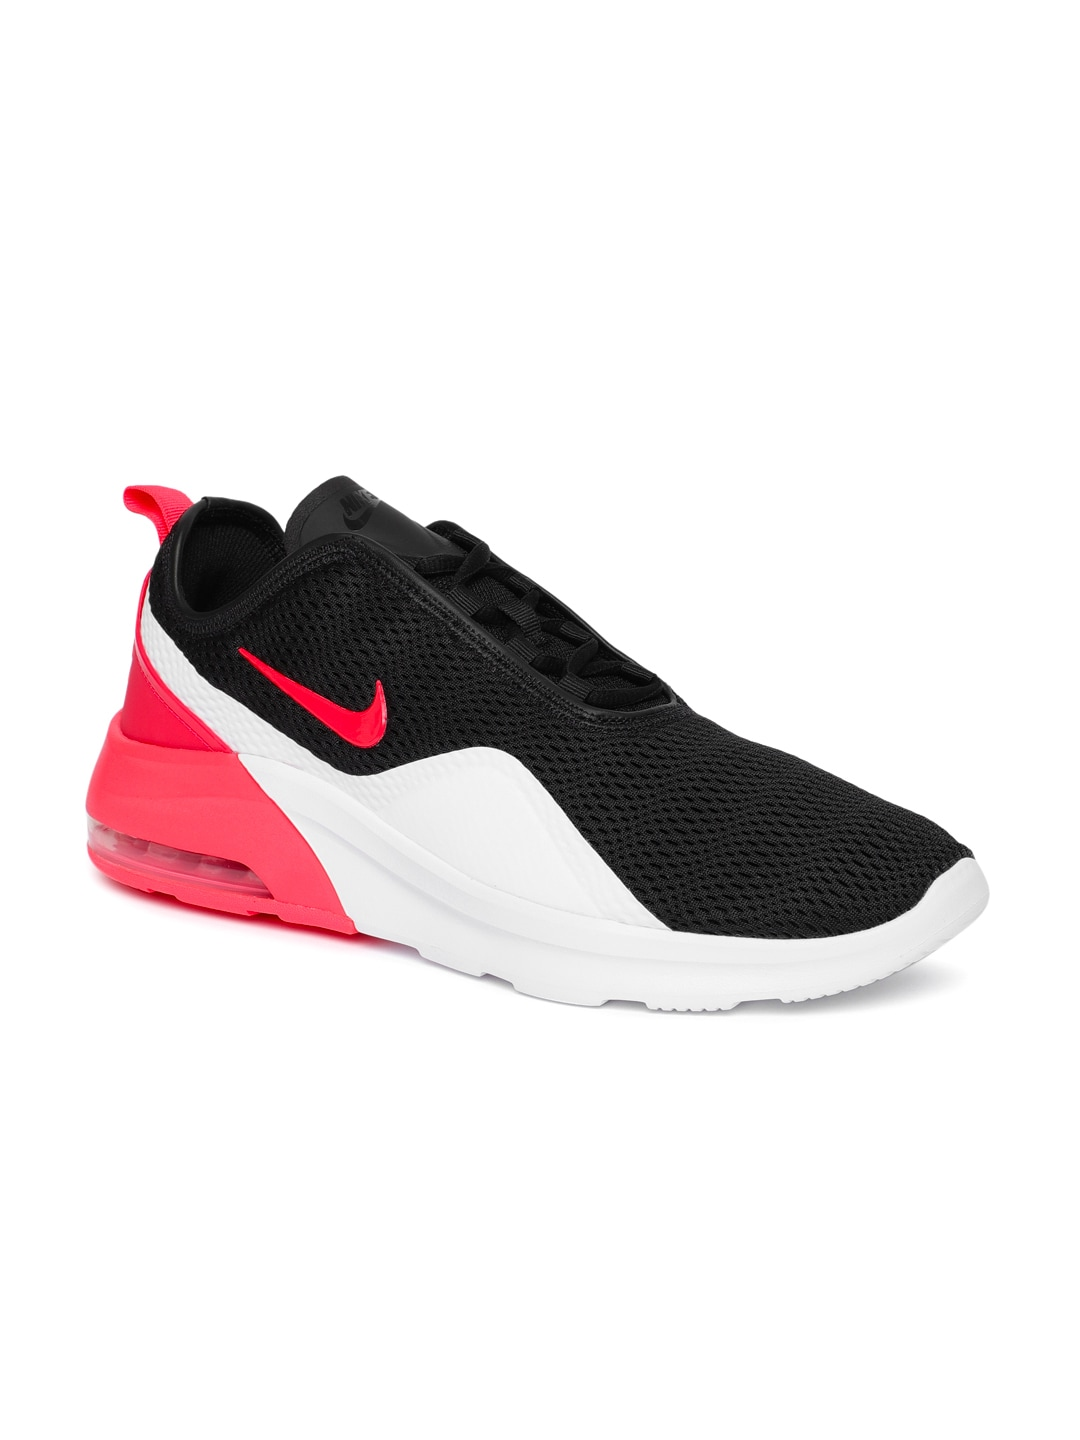 33d710d7de Nike Air Max - Buy Nike Air Max Shoes